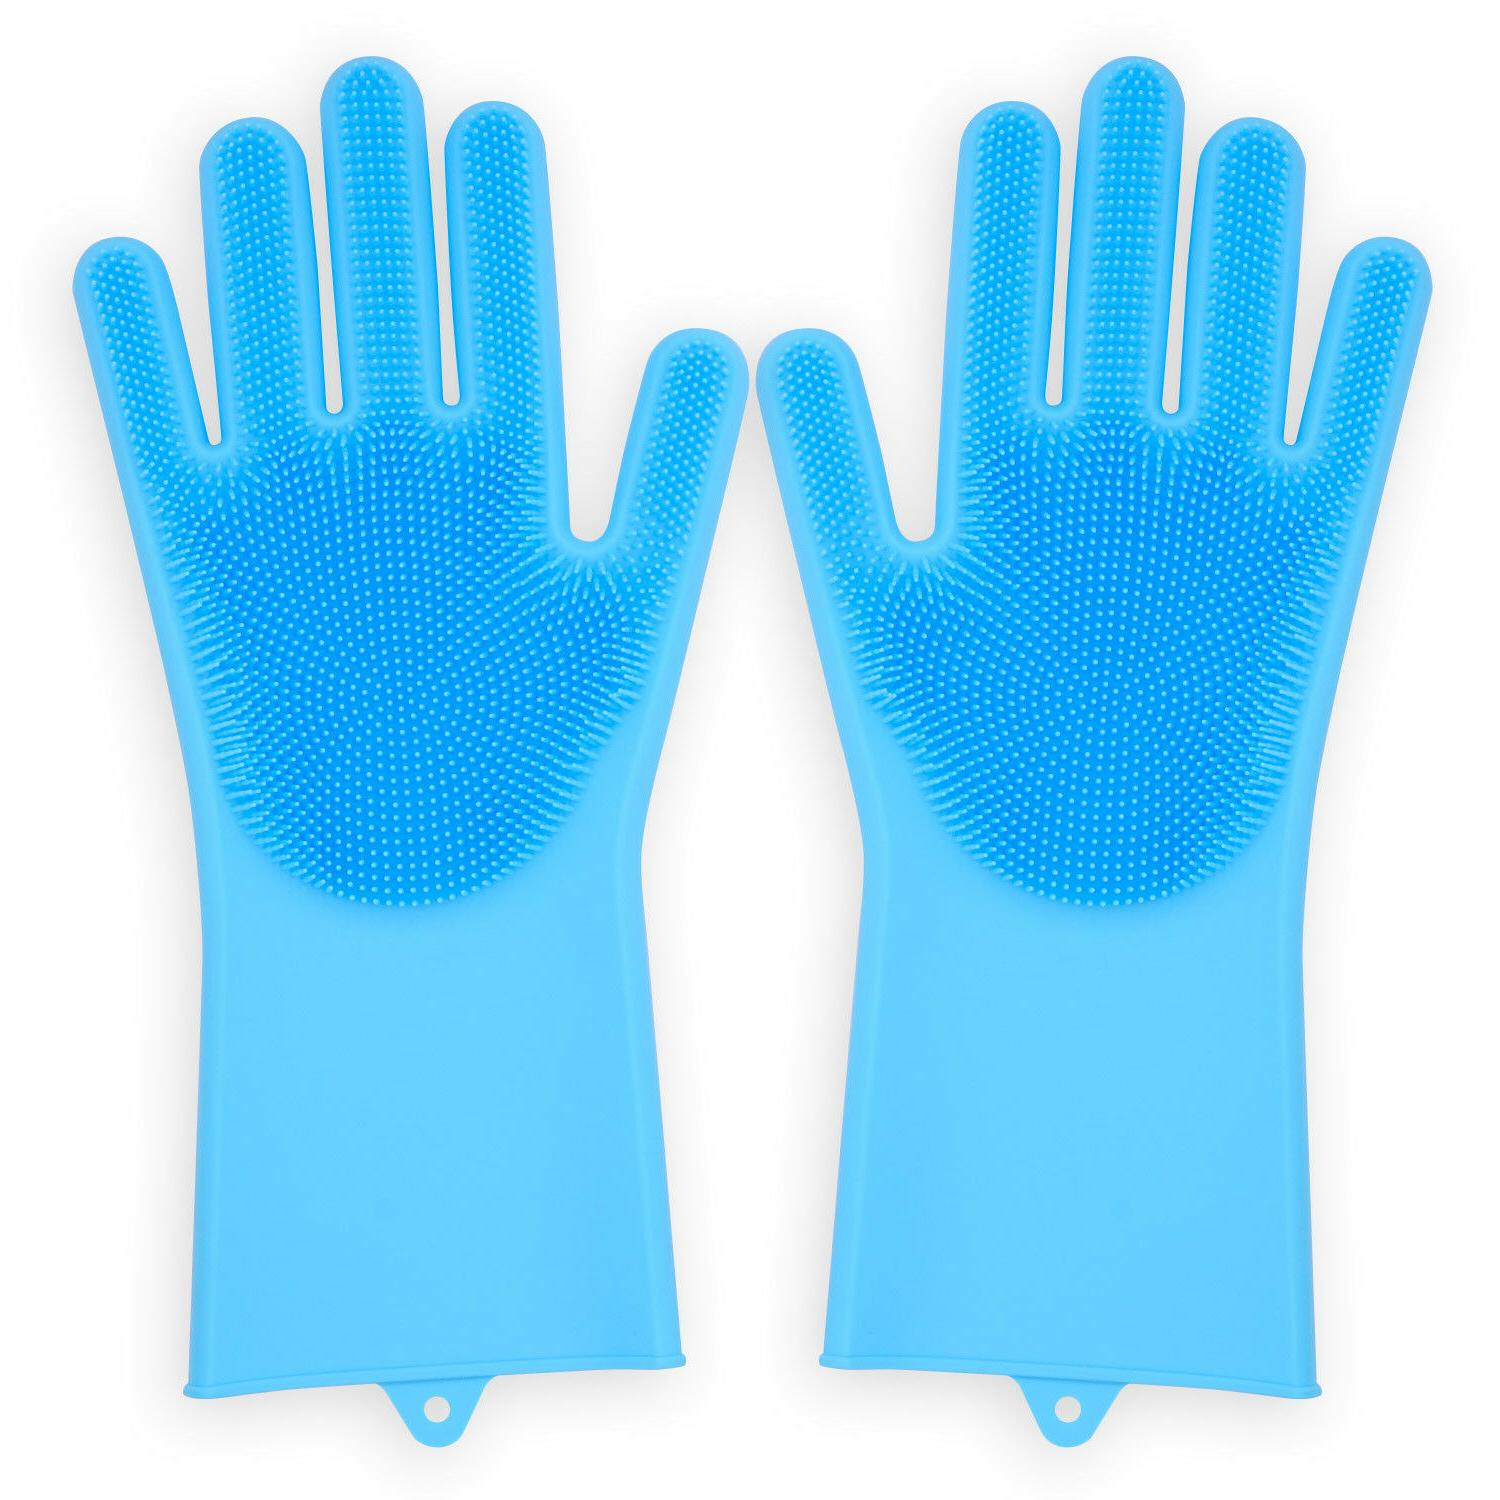 reusable heavy duty water proof resistant silicone